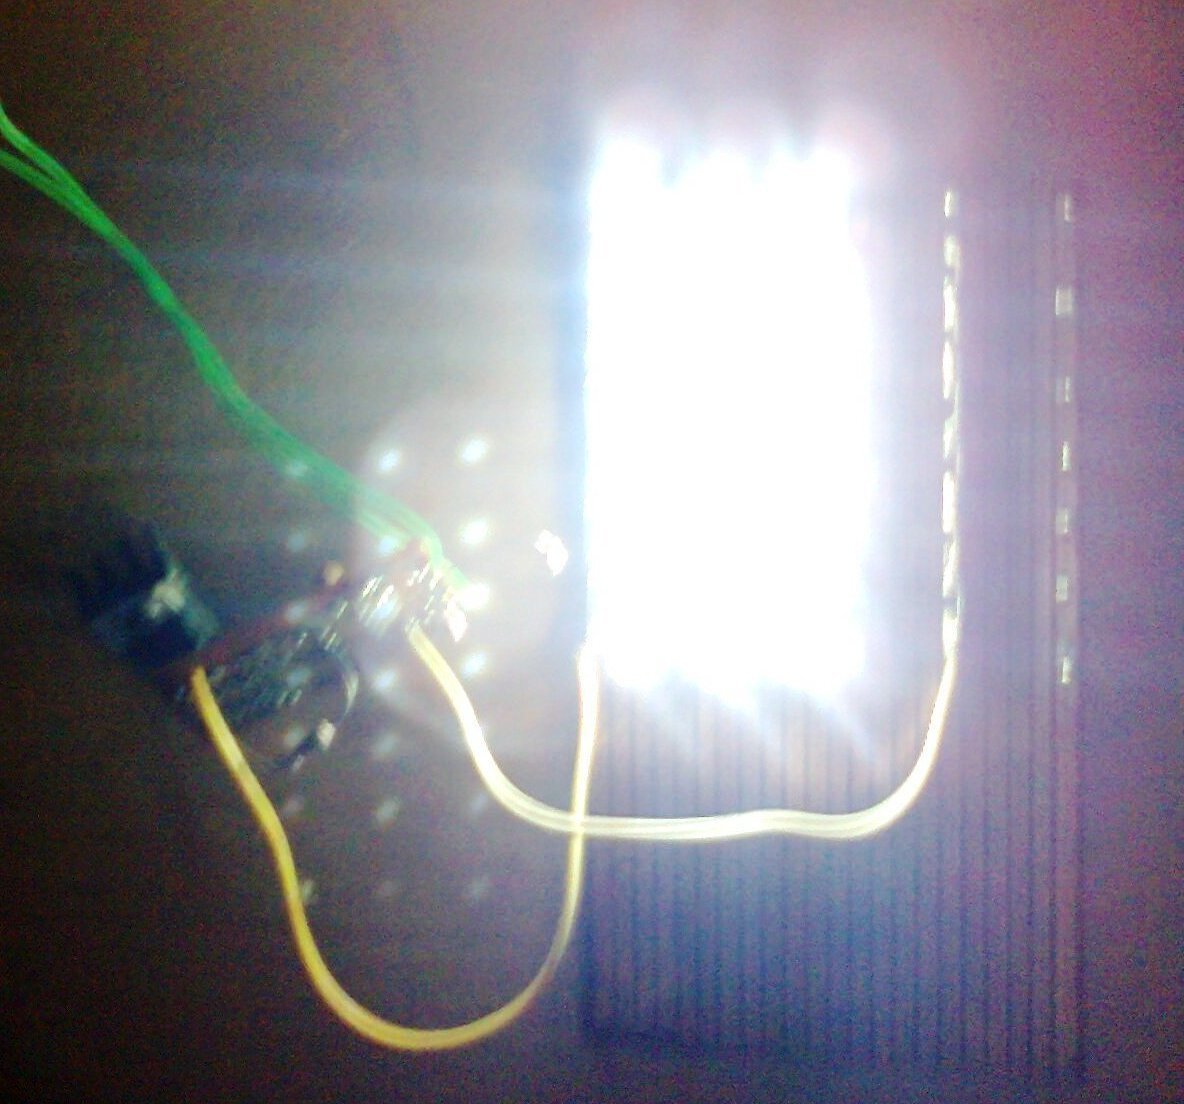 Automatic Solar Street Light Circuit Diagram Guide And 40 Watt Led Project Part 2 Centre Charger